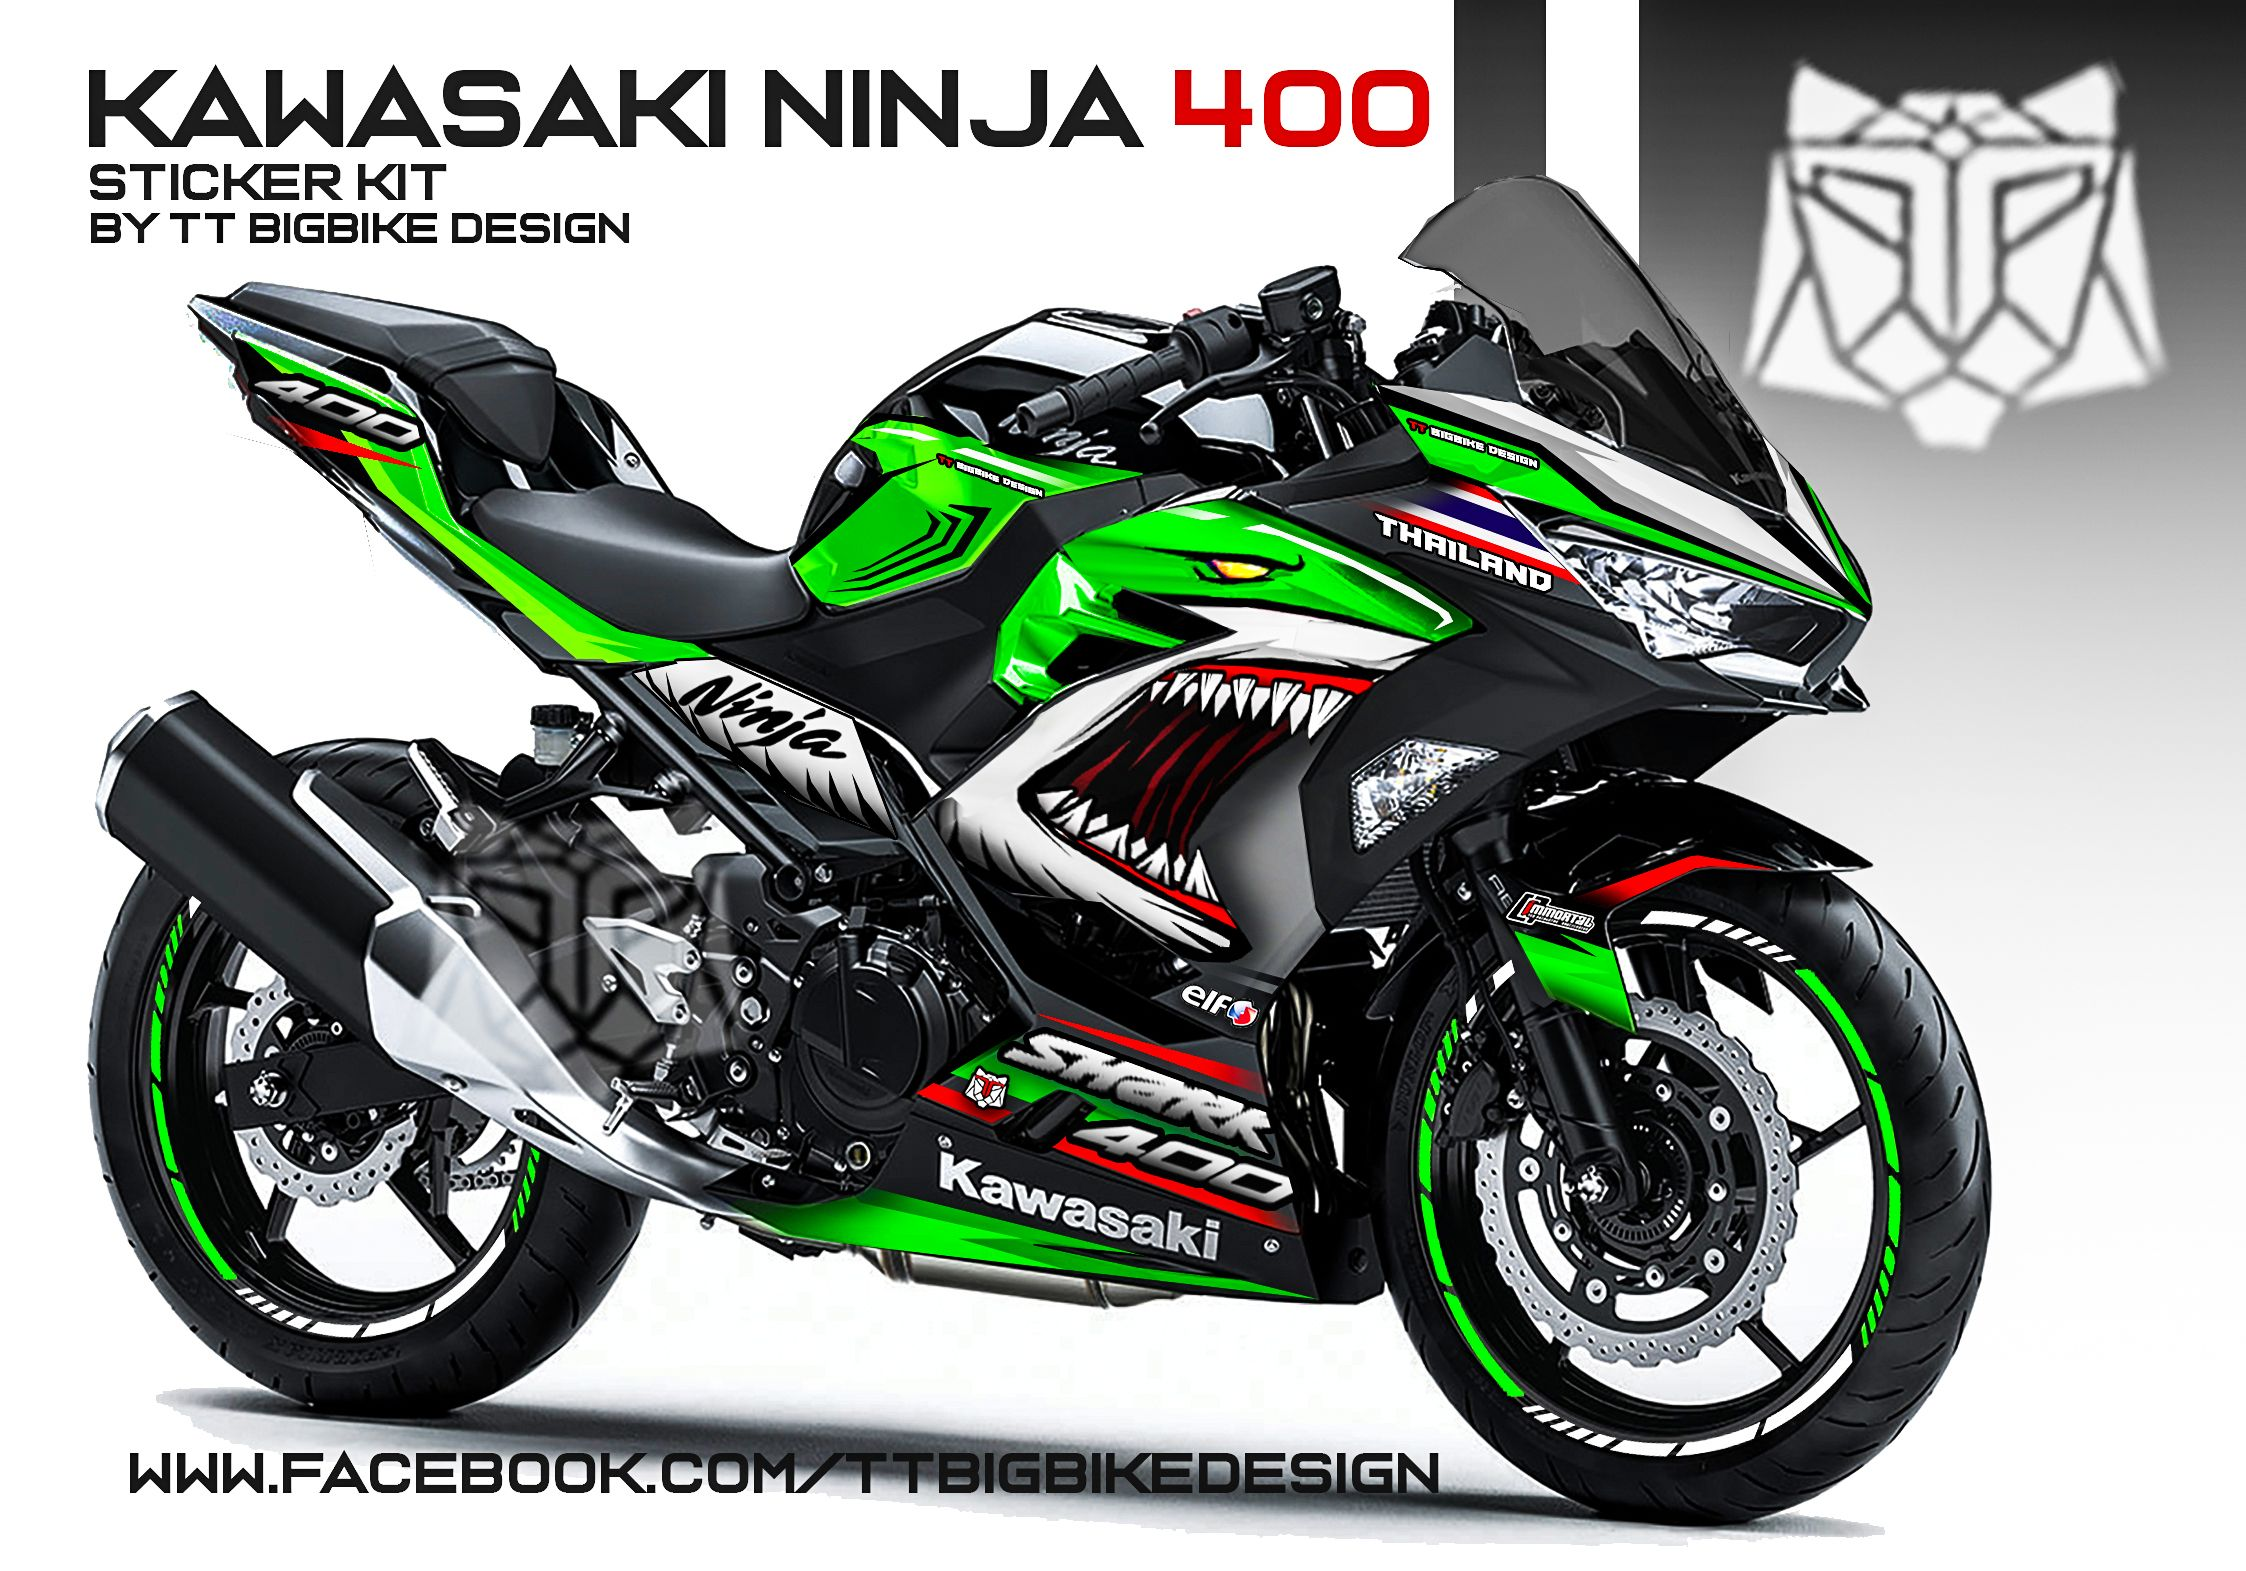 Sticker kit for ninja400 angry shark concept